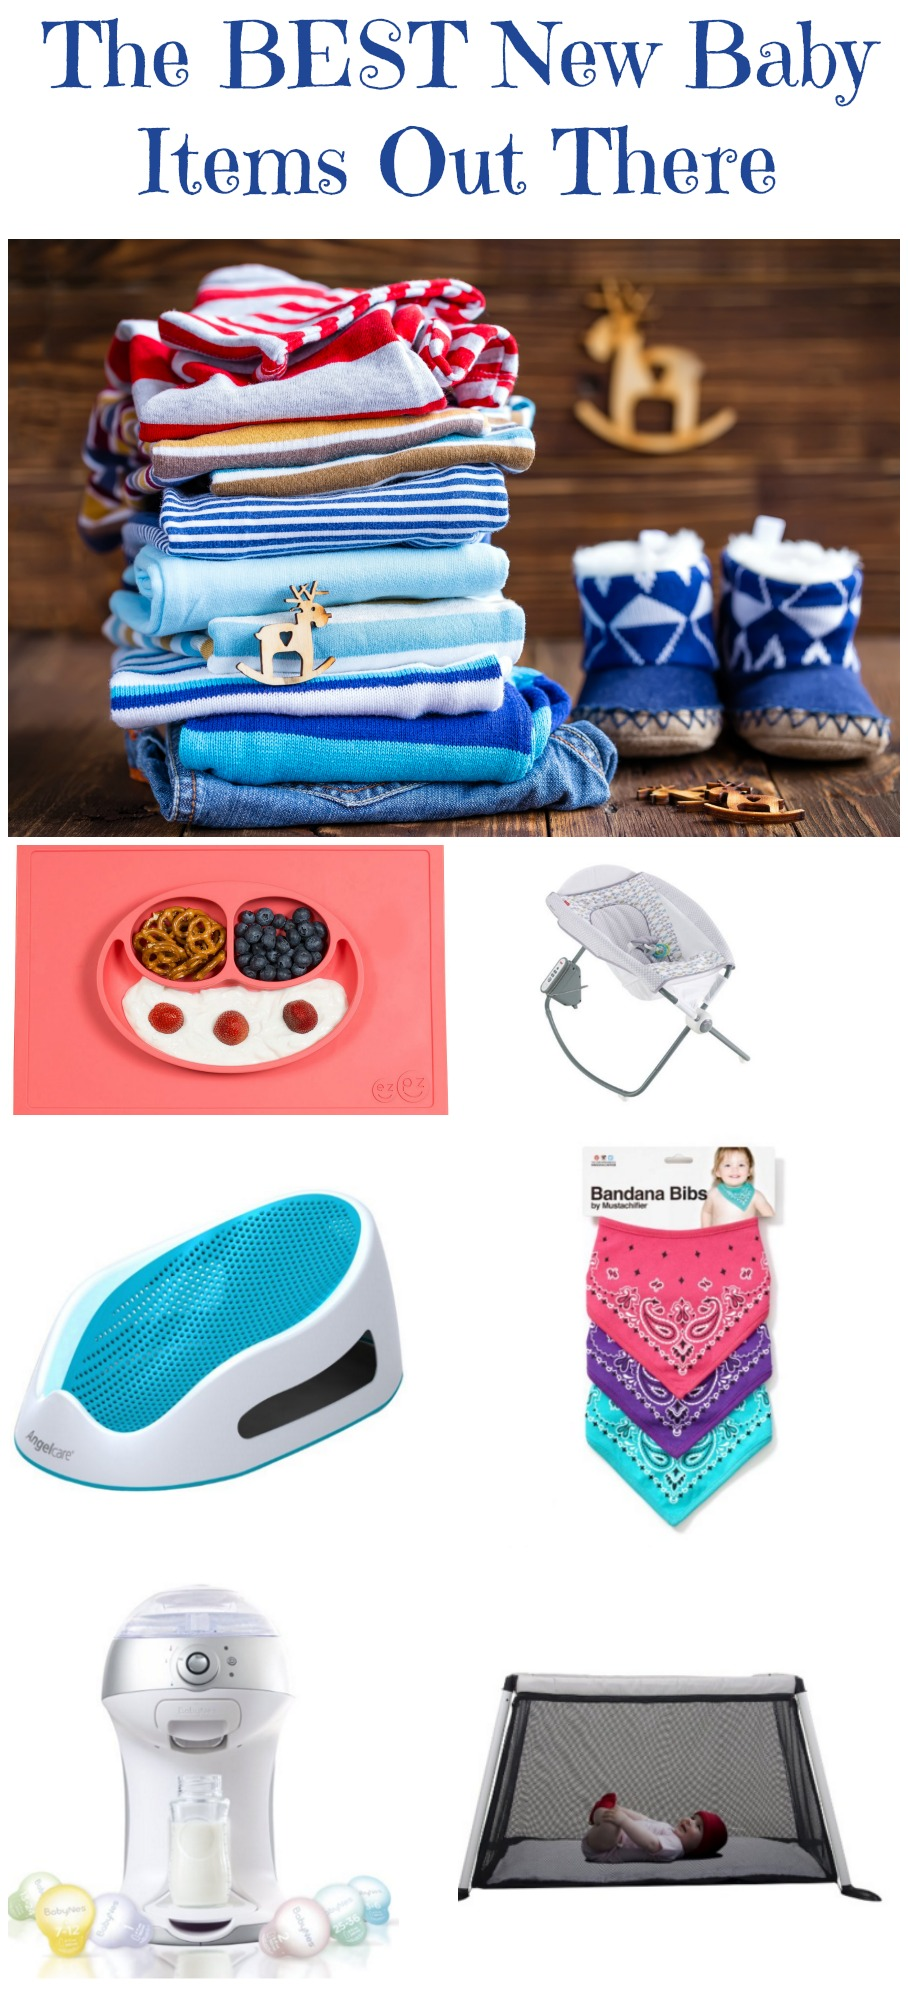 10 New Baby Products You Must Have - Rustic Baby Chic